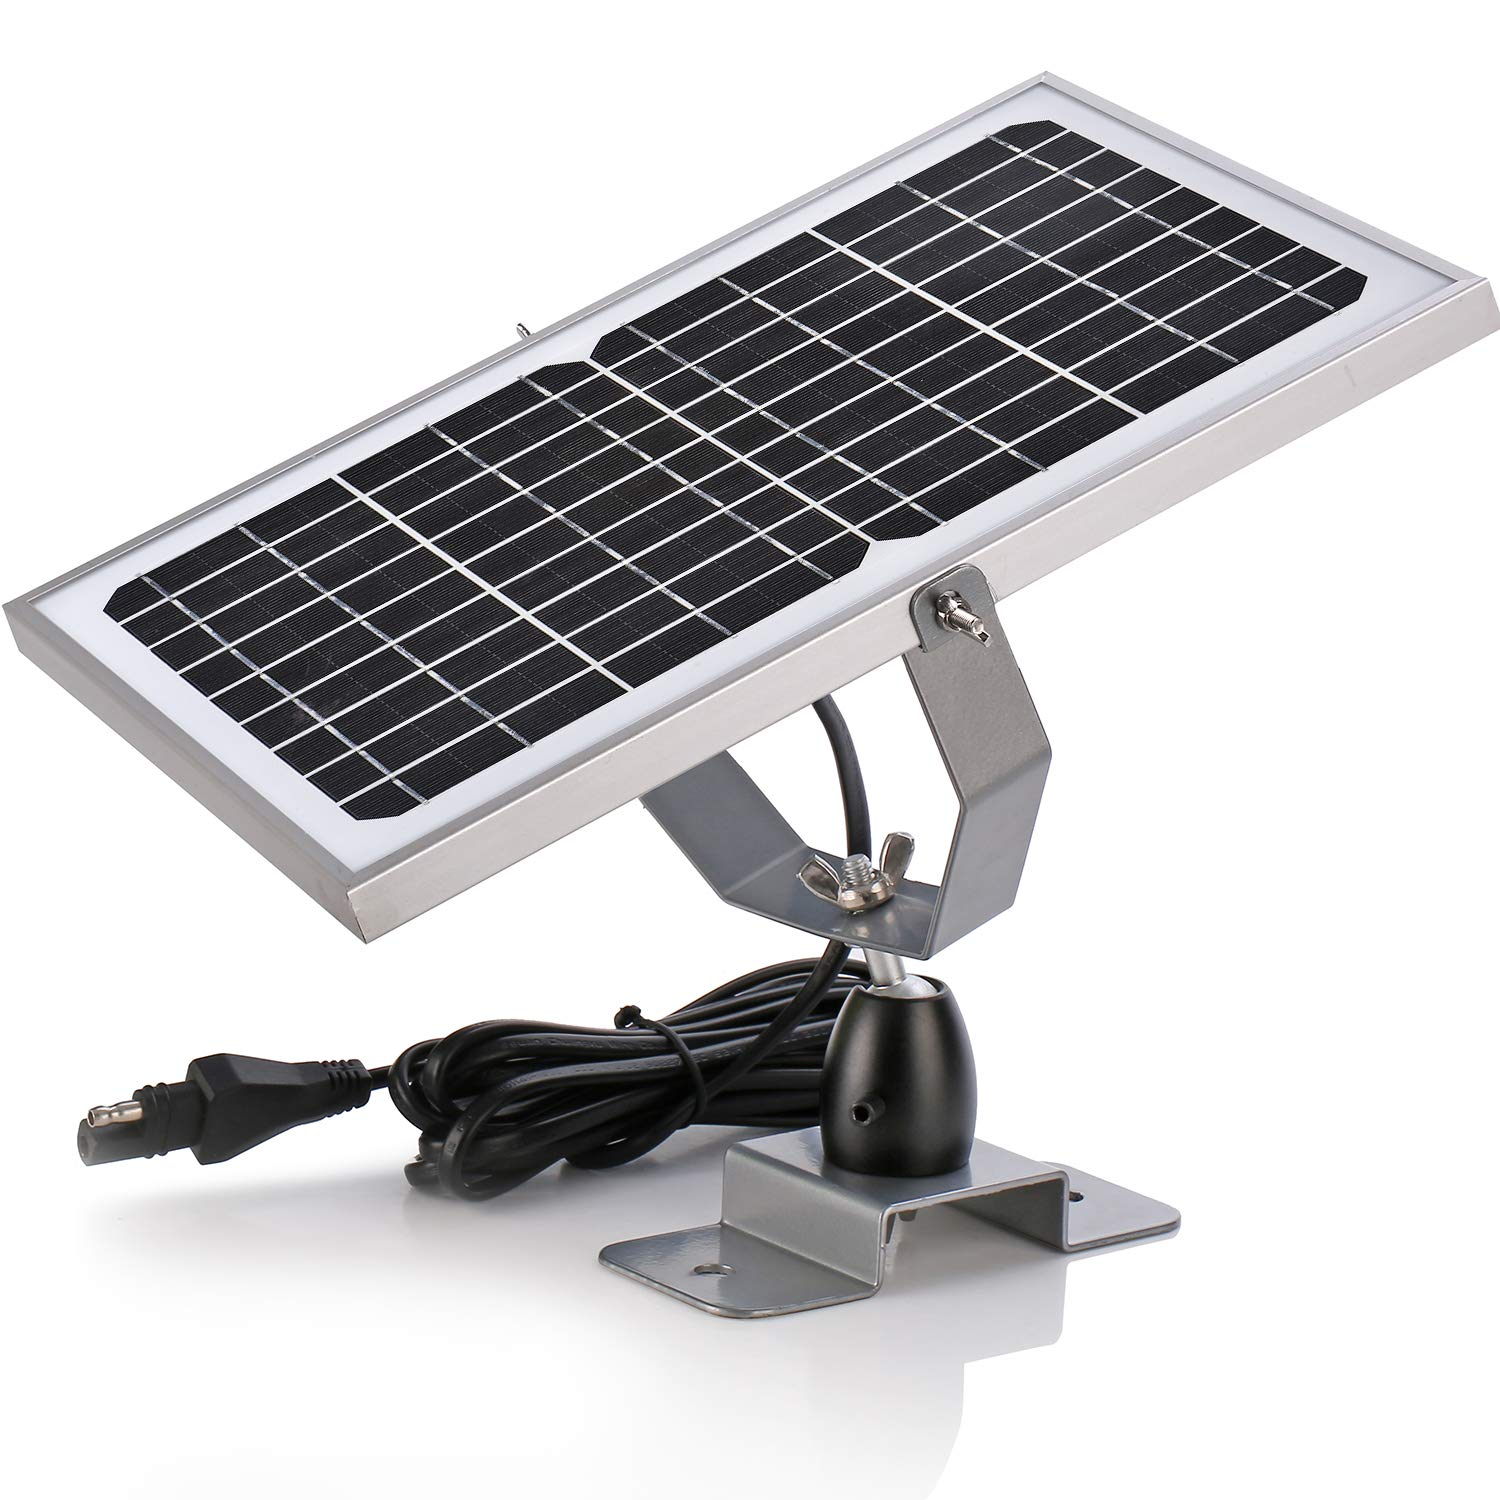 SUNER POWER 12V Waterproof Solar Battery Trickle Charger & Maintainer - 10 Watts Solar Panel Built-in Intelligent MPPT Solar Charge Controller + Adjustable Mount Bracket + SAE Connection Cable Kits by SUNER POWER